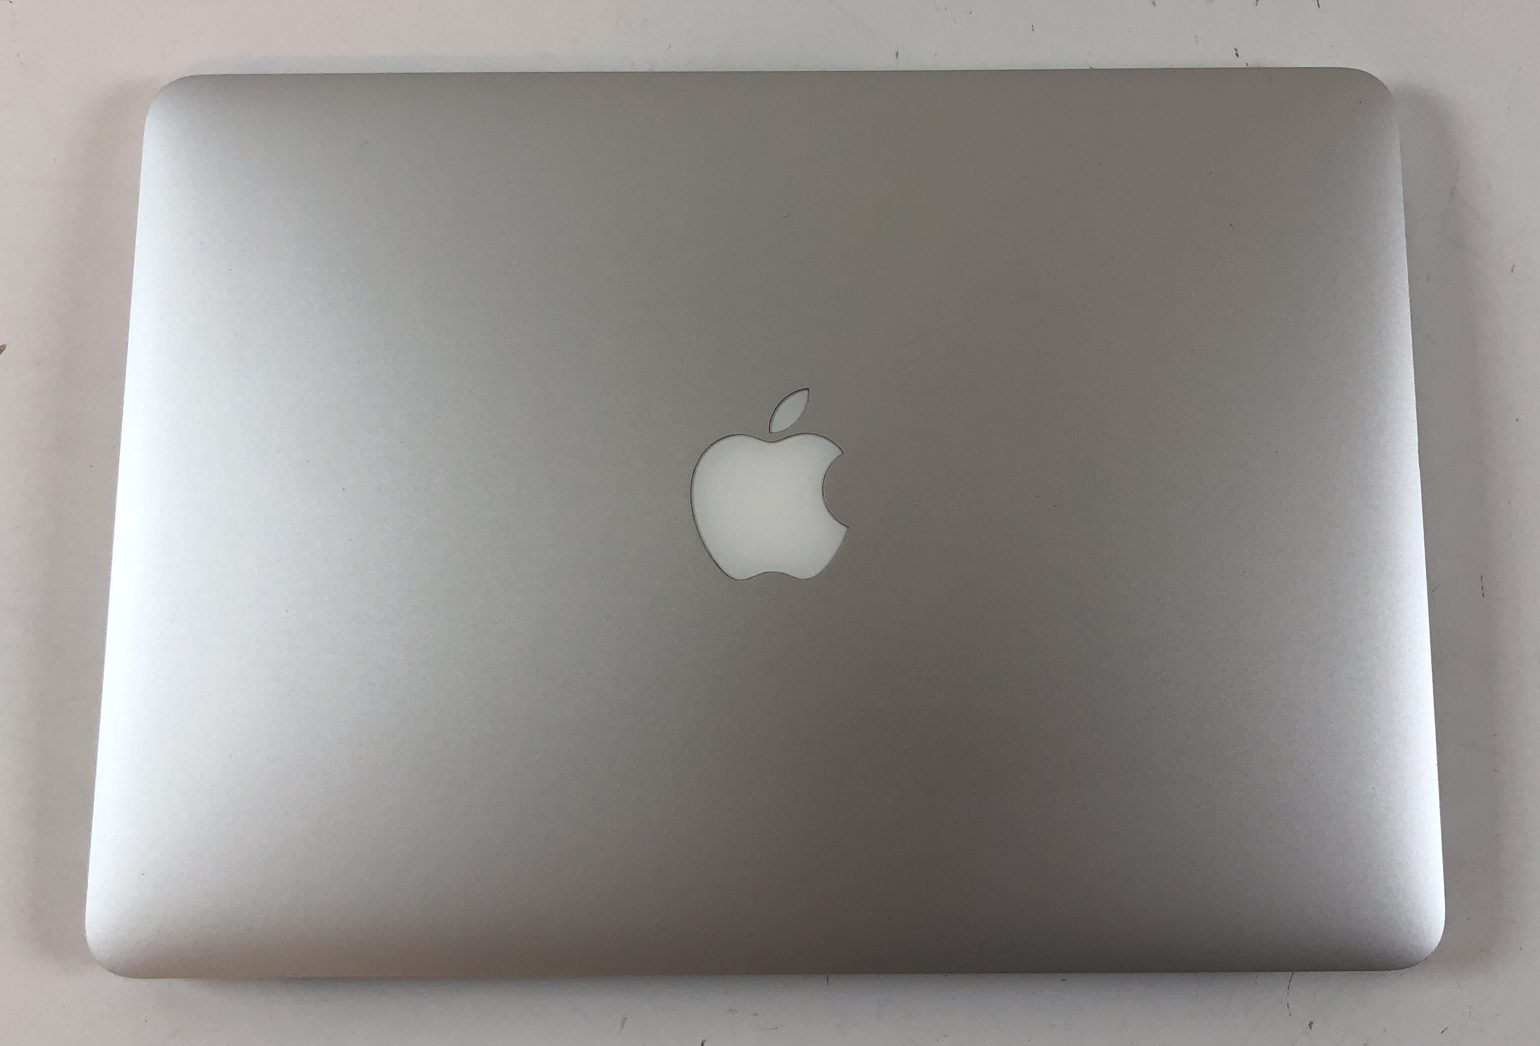 "MacBook Pro Retina 13"" Mid 2014 (Intel Core i5 2.6 GHz 8 GB RAM 128 GB SSD), Intel Core i5 2.6 GHz, 8 GB RAM, 128 GB SSD, image 2"